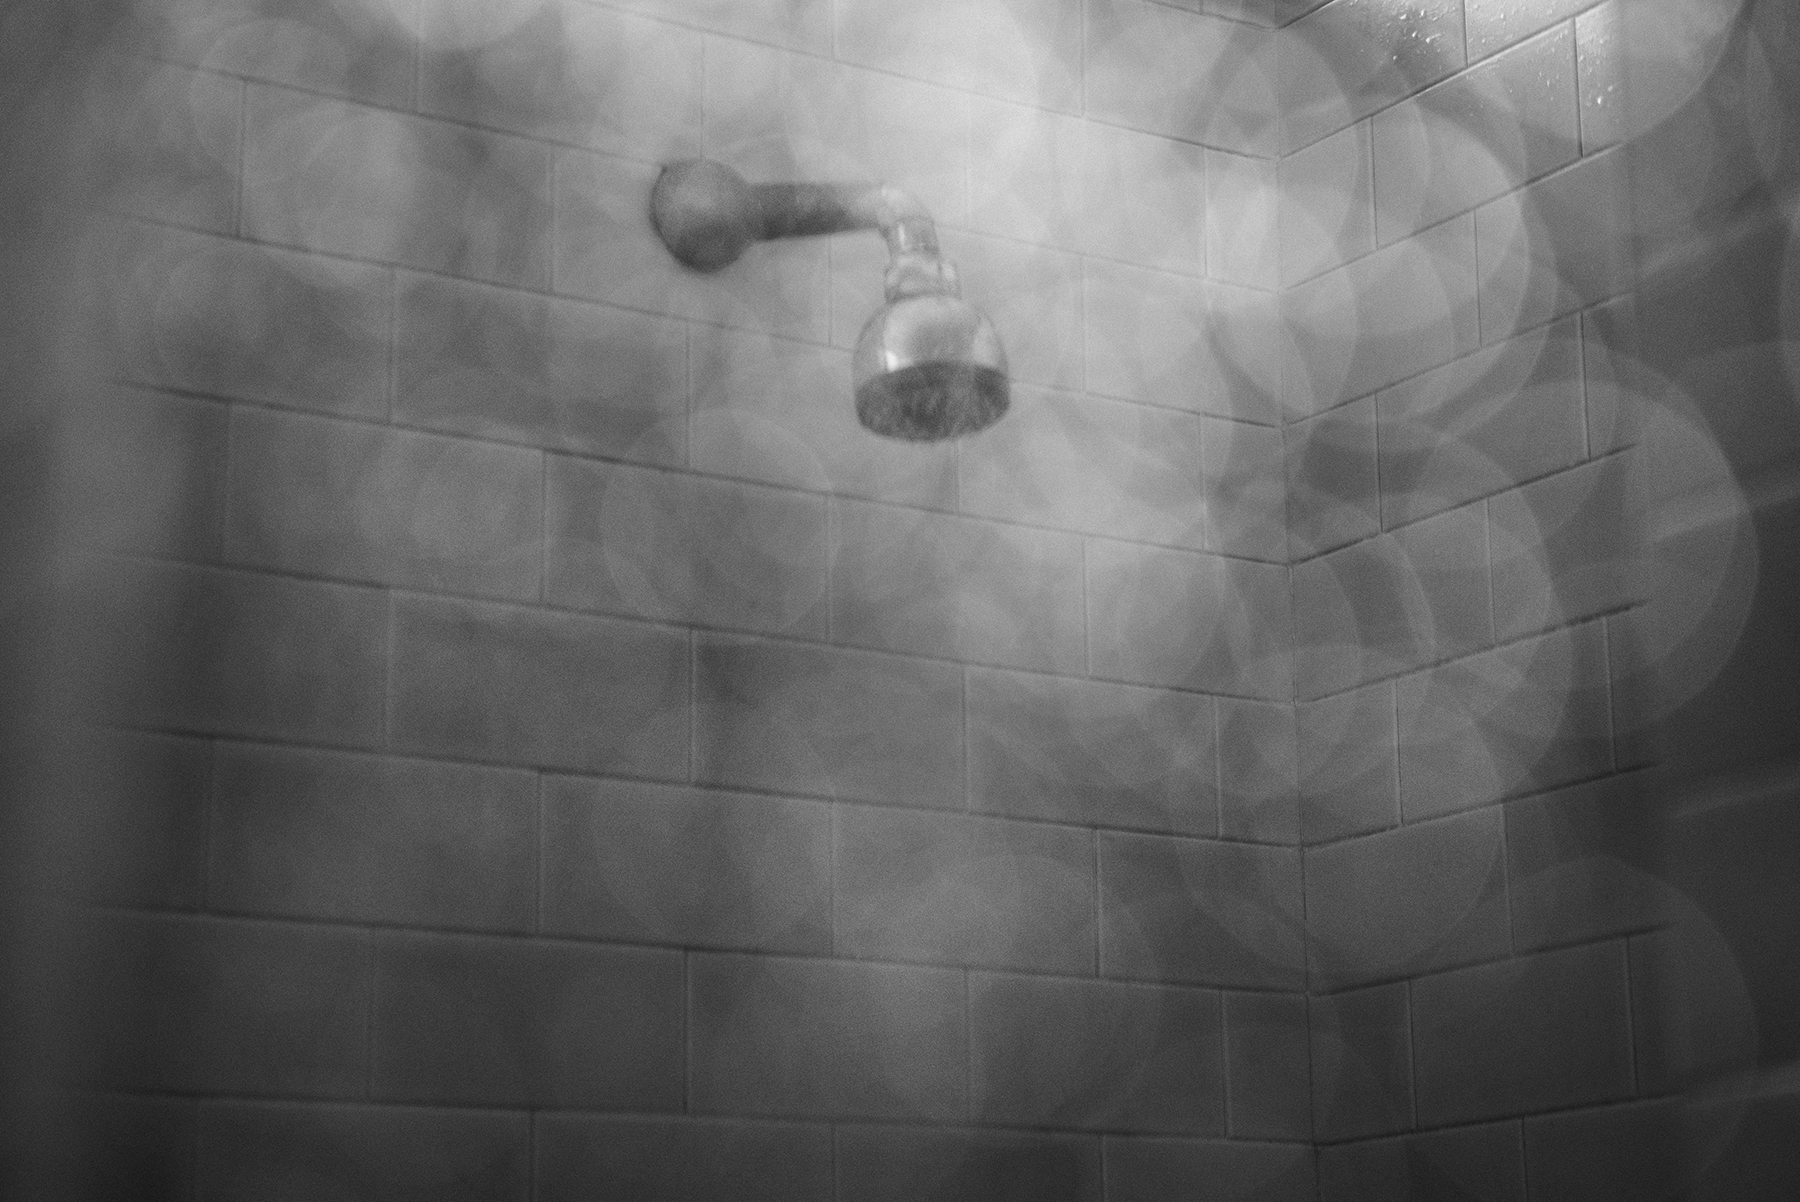 A shower at the Public Baths of Via Agliè in the working-class district of Barriera di Milano in Turin, Italy; July 2017.Turin has the highest rate of evictions/population in Italy: 2799 forced evictions were executed in 2017 only, on a total of 32,069 in the whole country. An average of 7 every day.